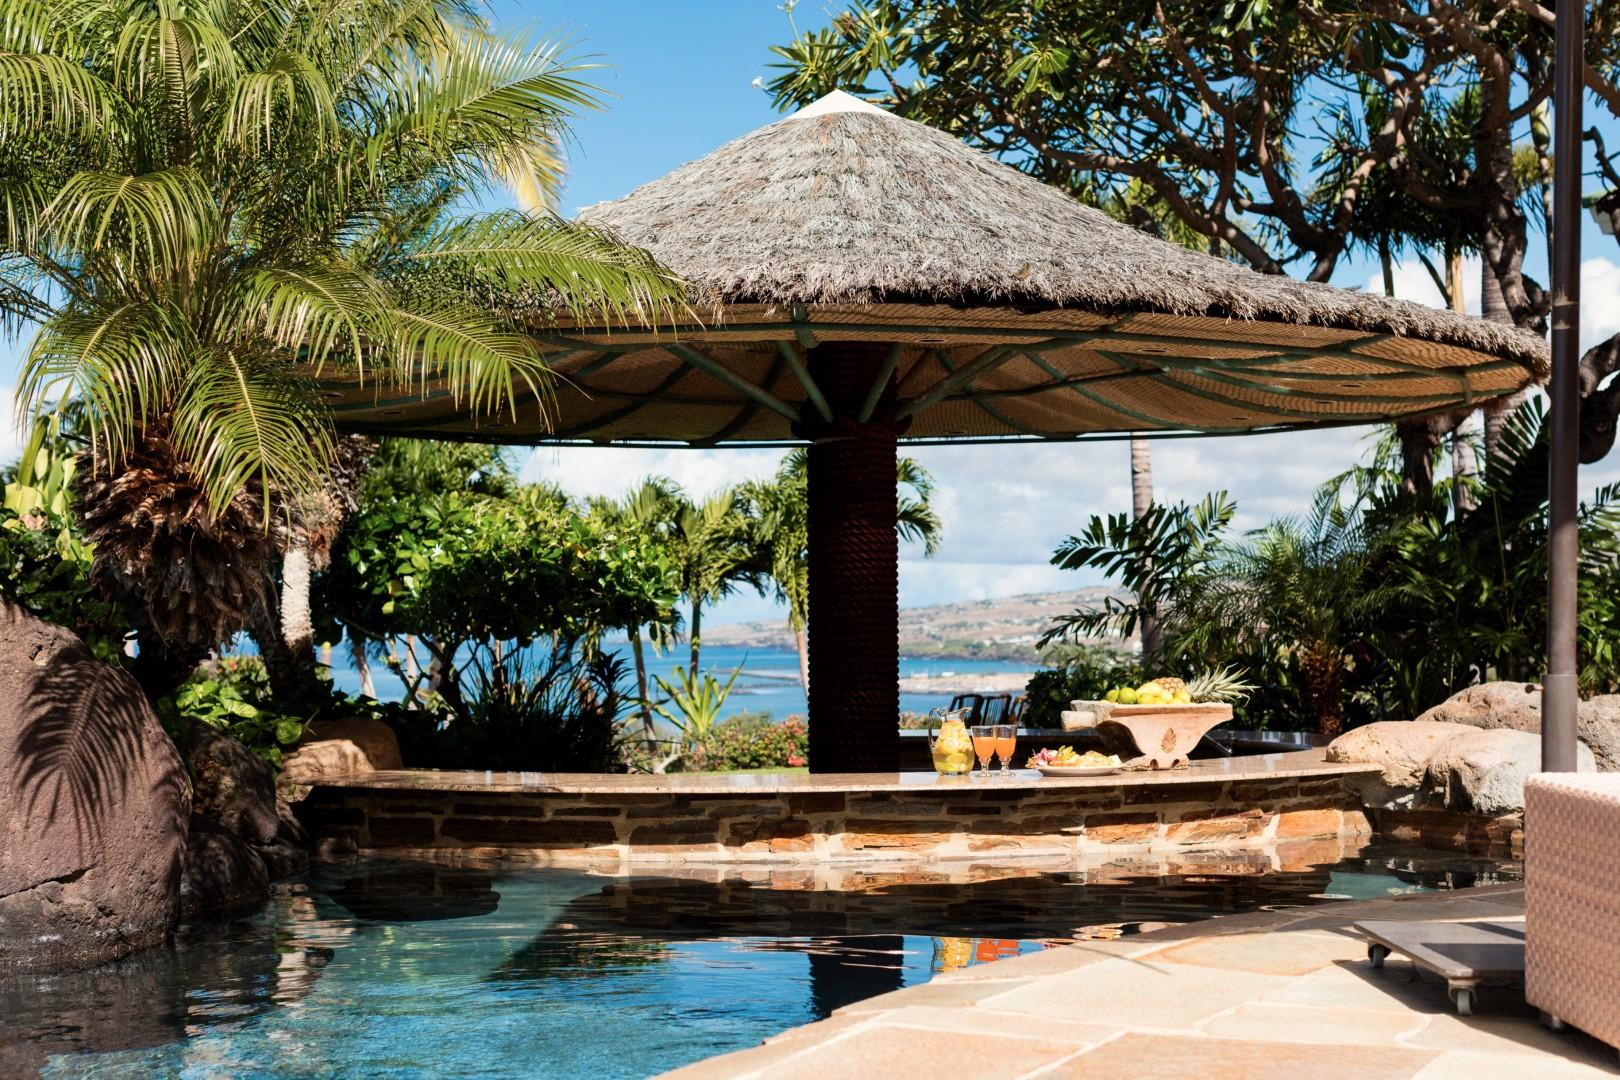 Swim-up palapa bar with submerged lava rock stools and view to ocean.